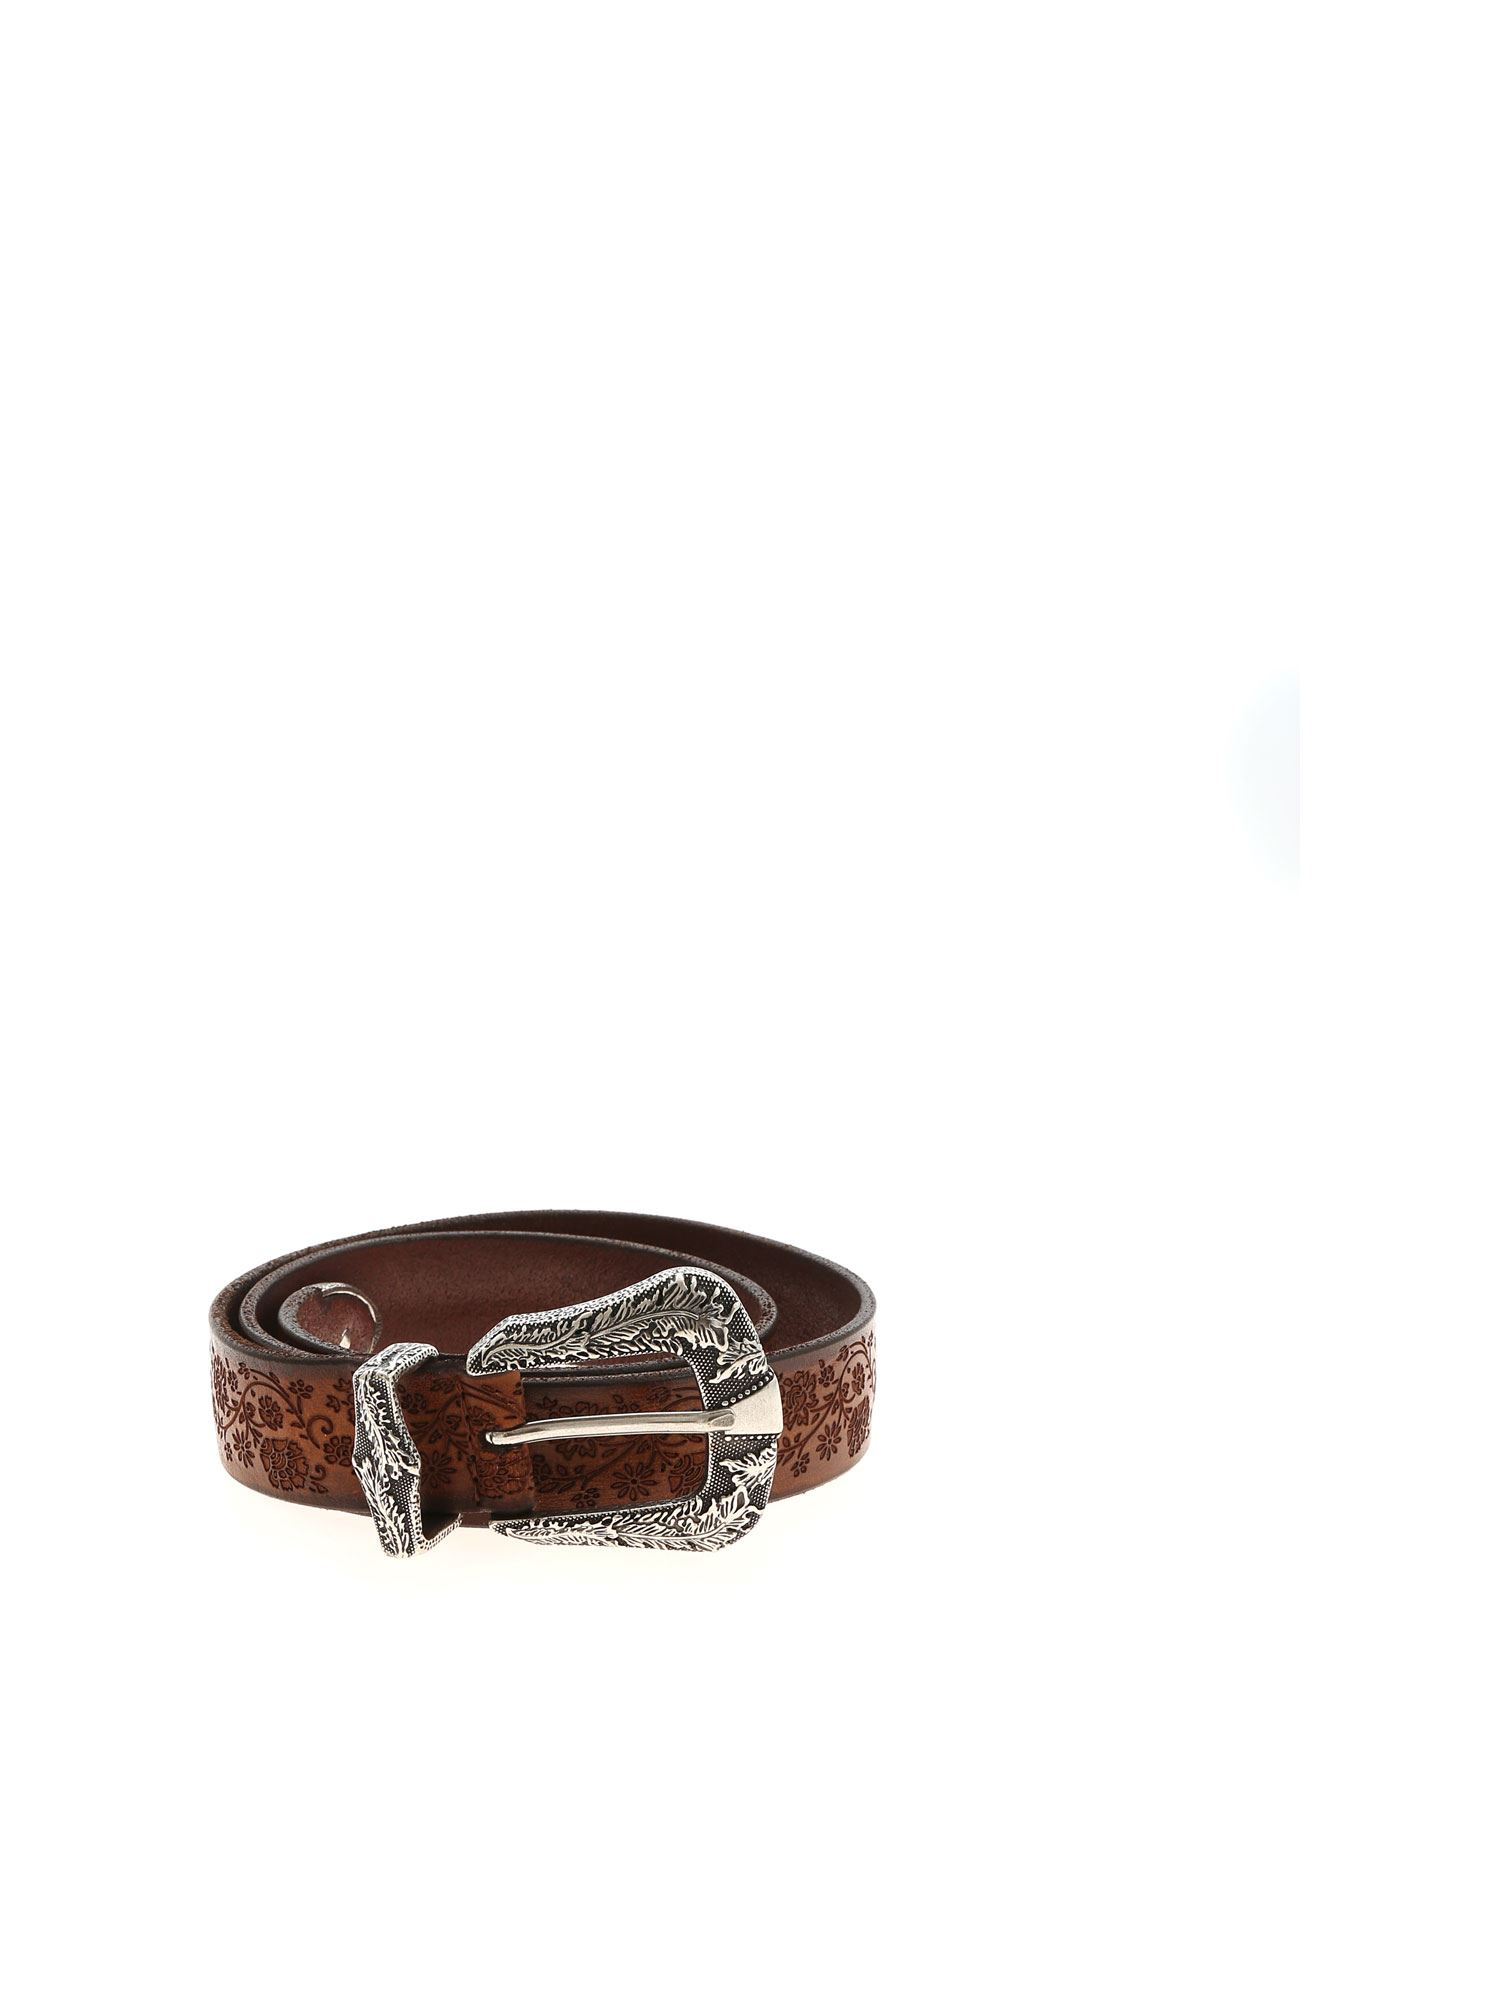 Orciani FLORAL PATTERN LEATHER BELT IN BROWN